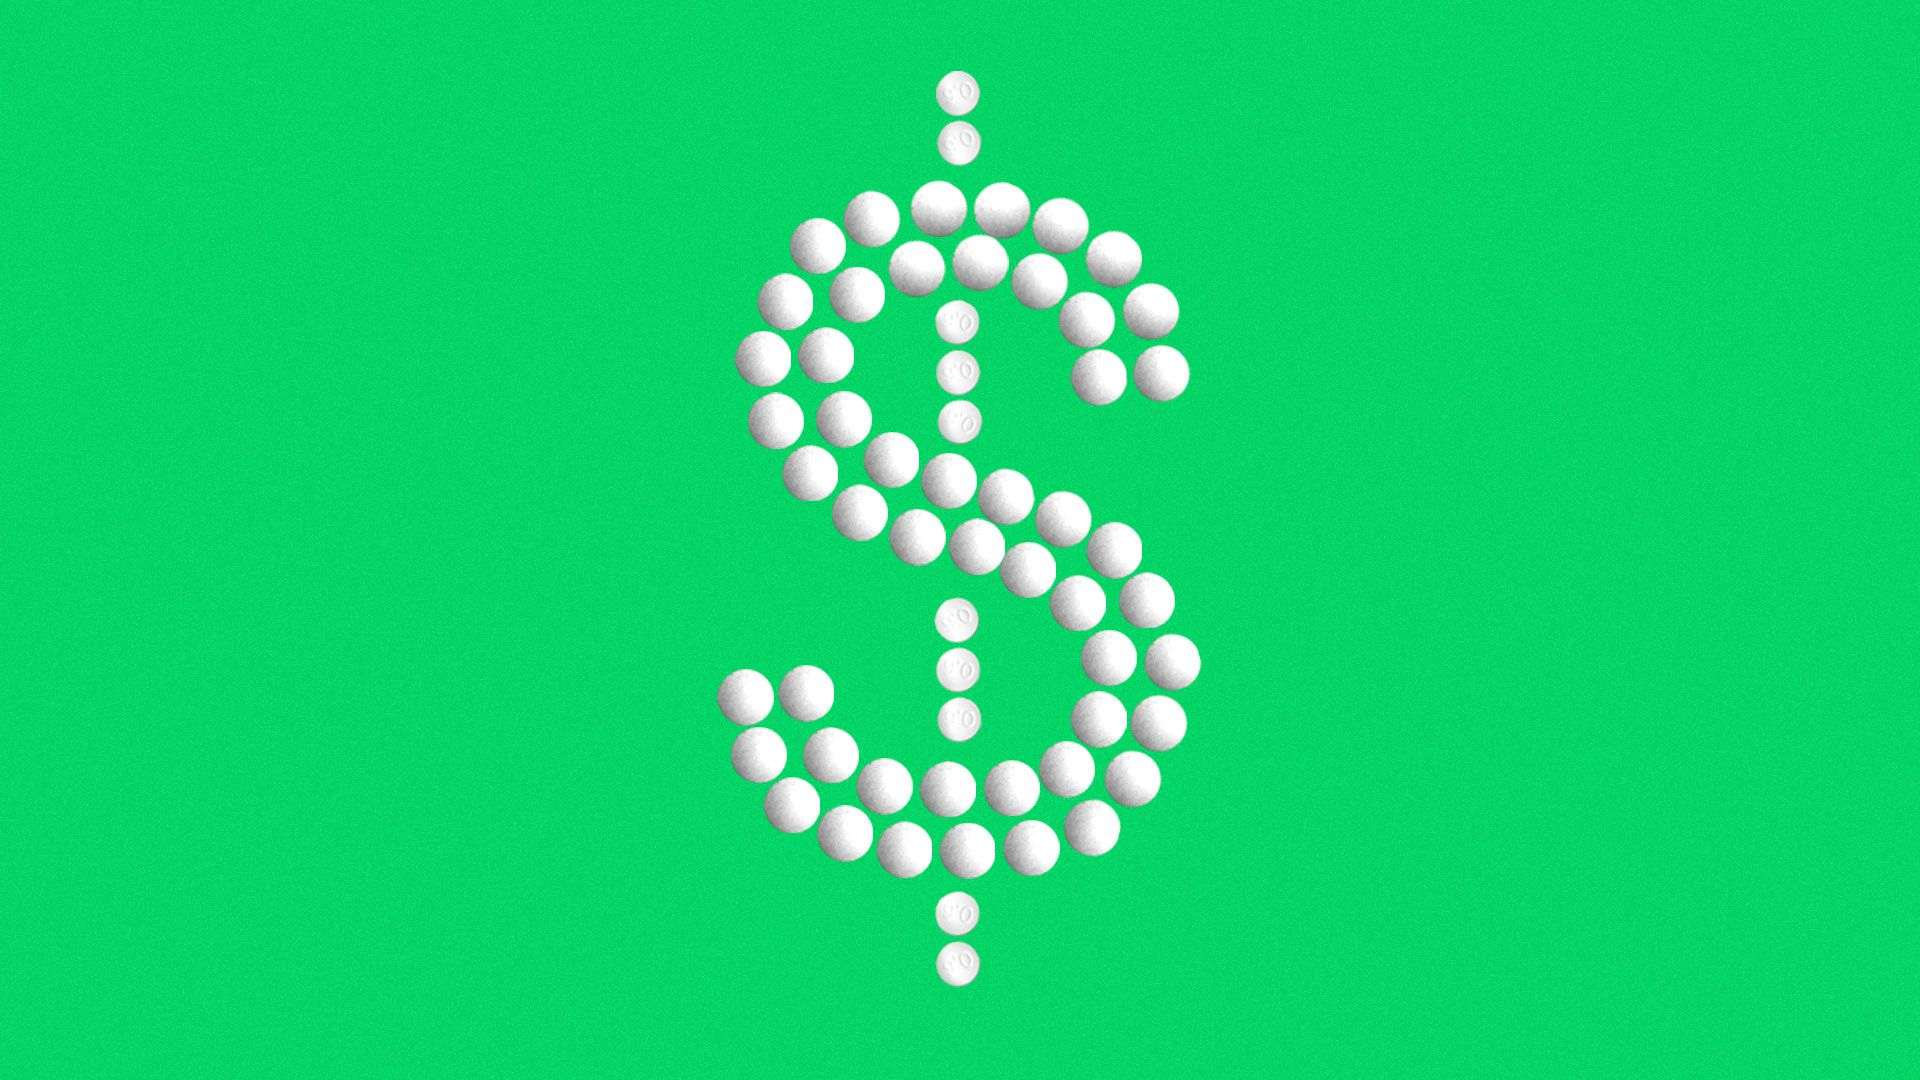 Illustration of dollar sign formed by pills.